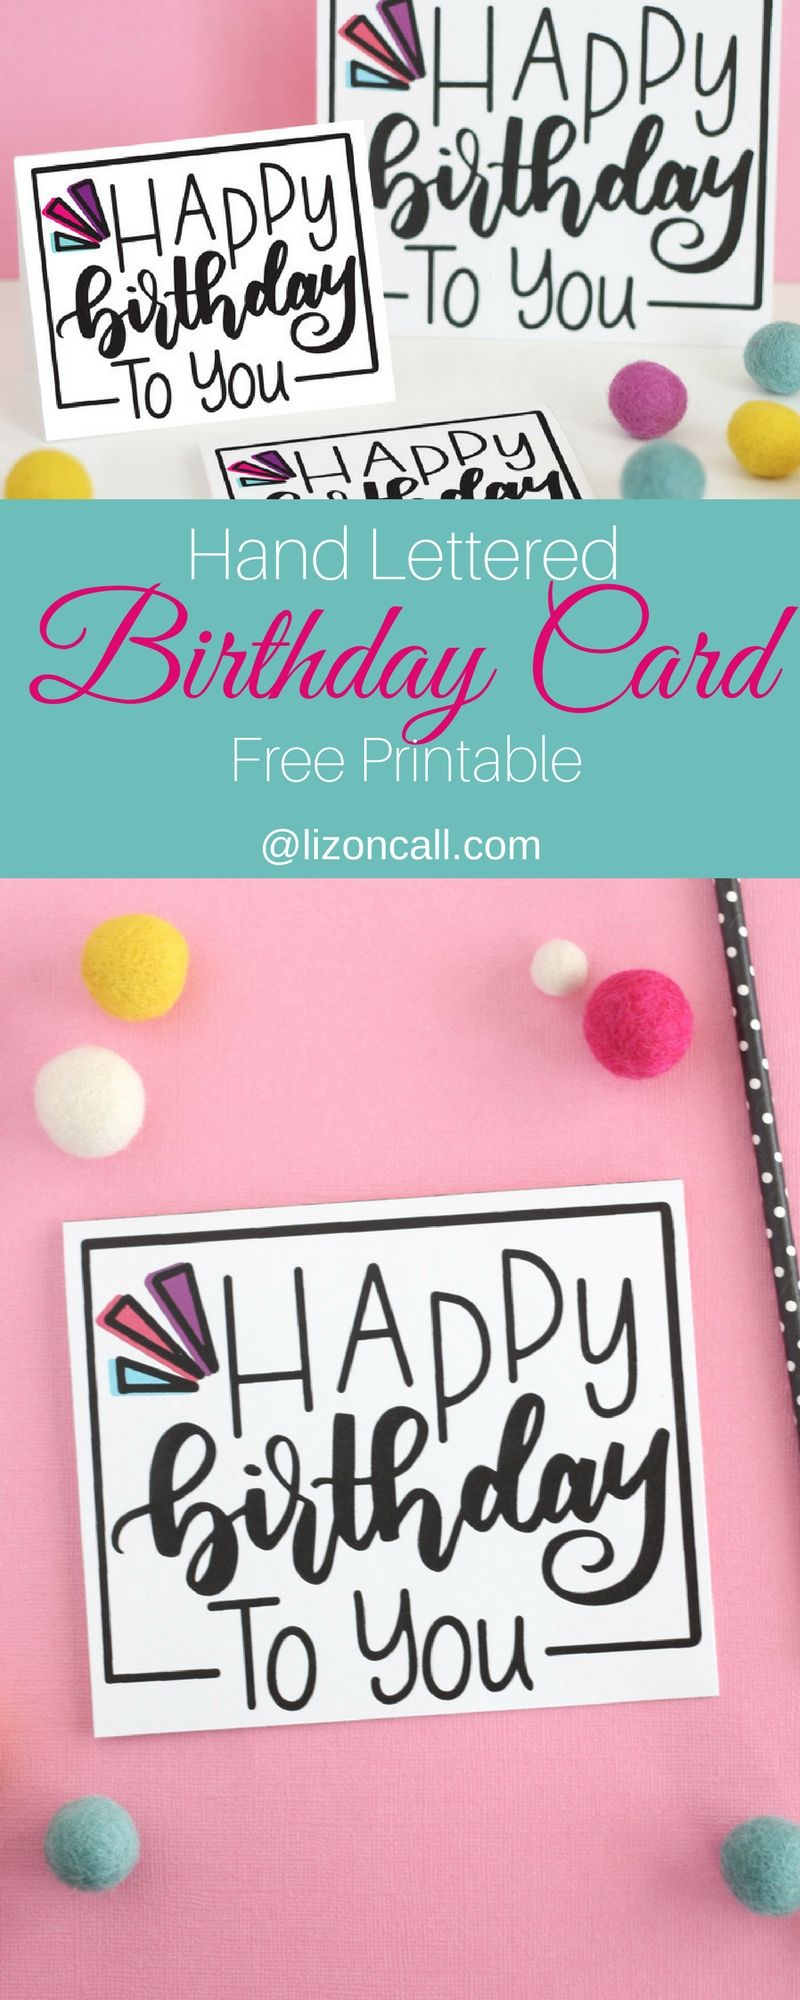 free printable birthday cards for your best friend ; a5959c956246028d4a59dc71f99ba0ba